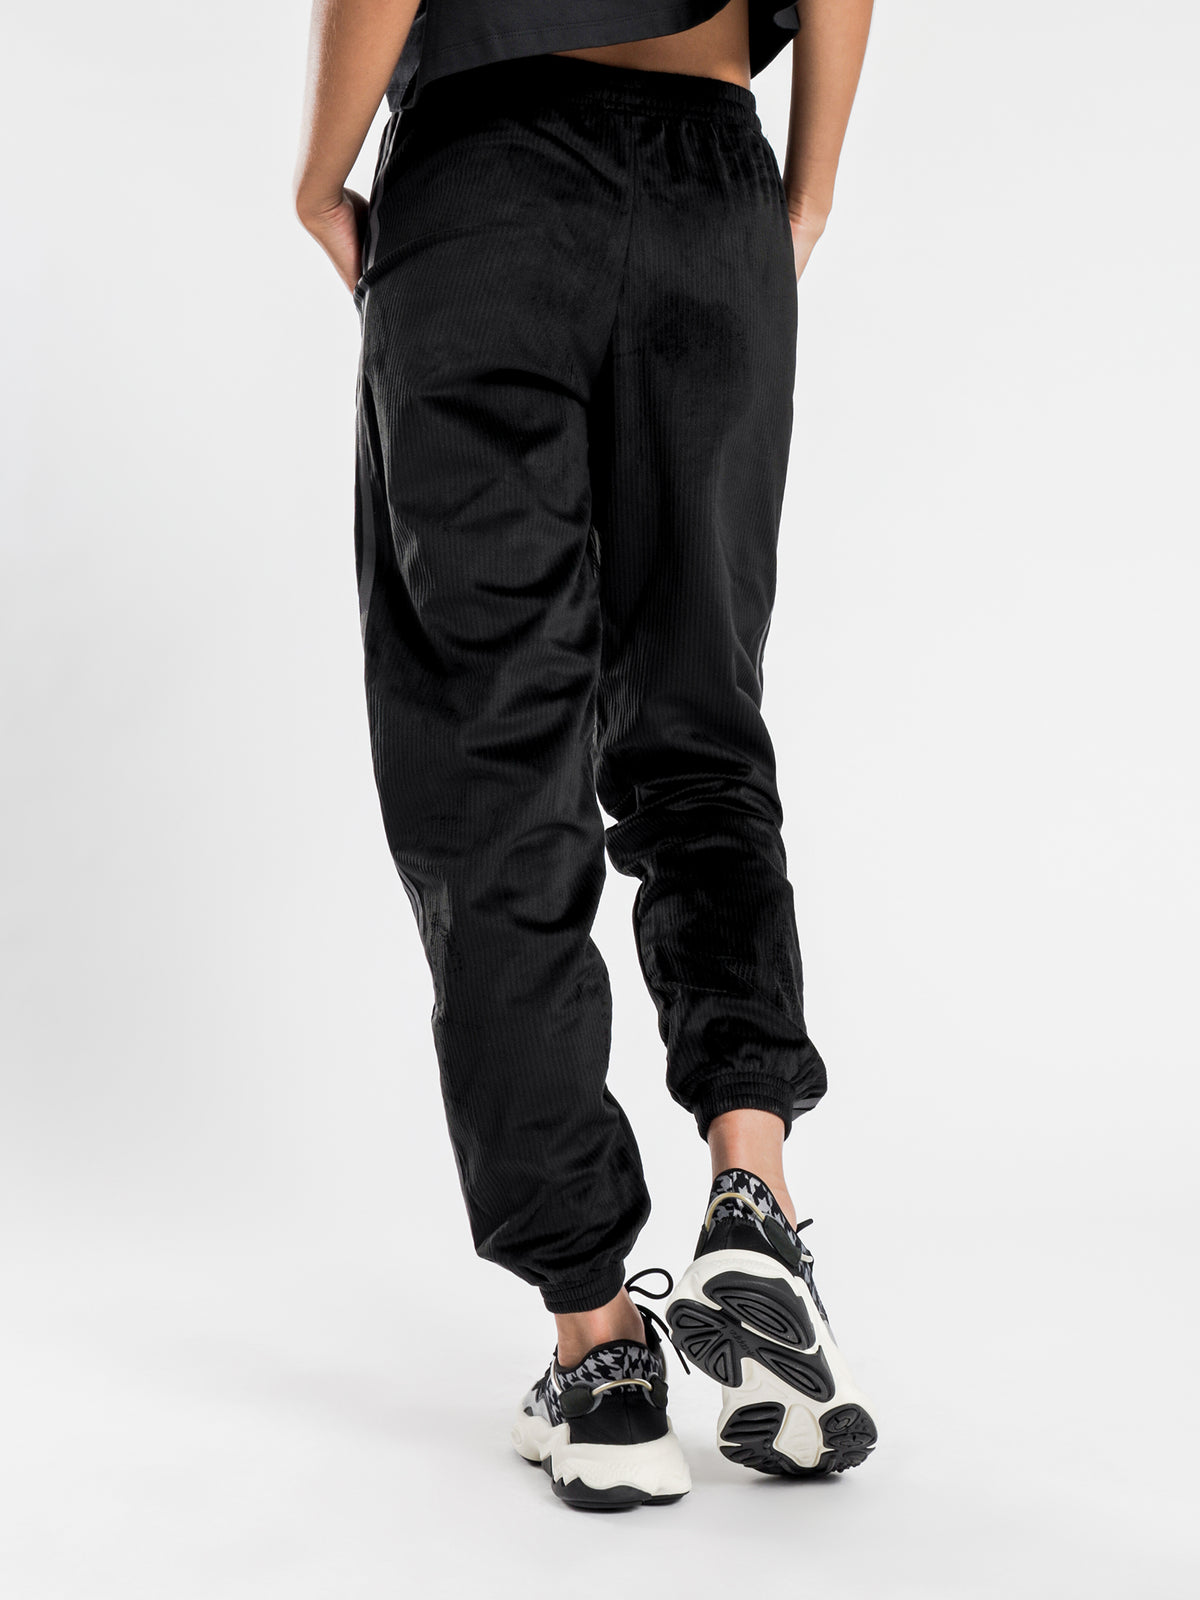 CC Corduroy Track Pants in Black